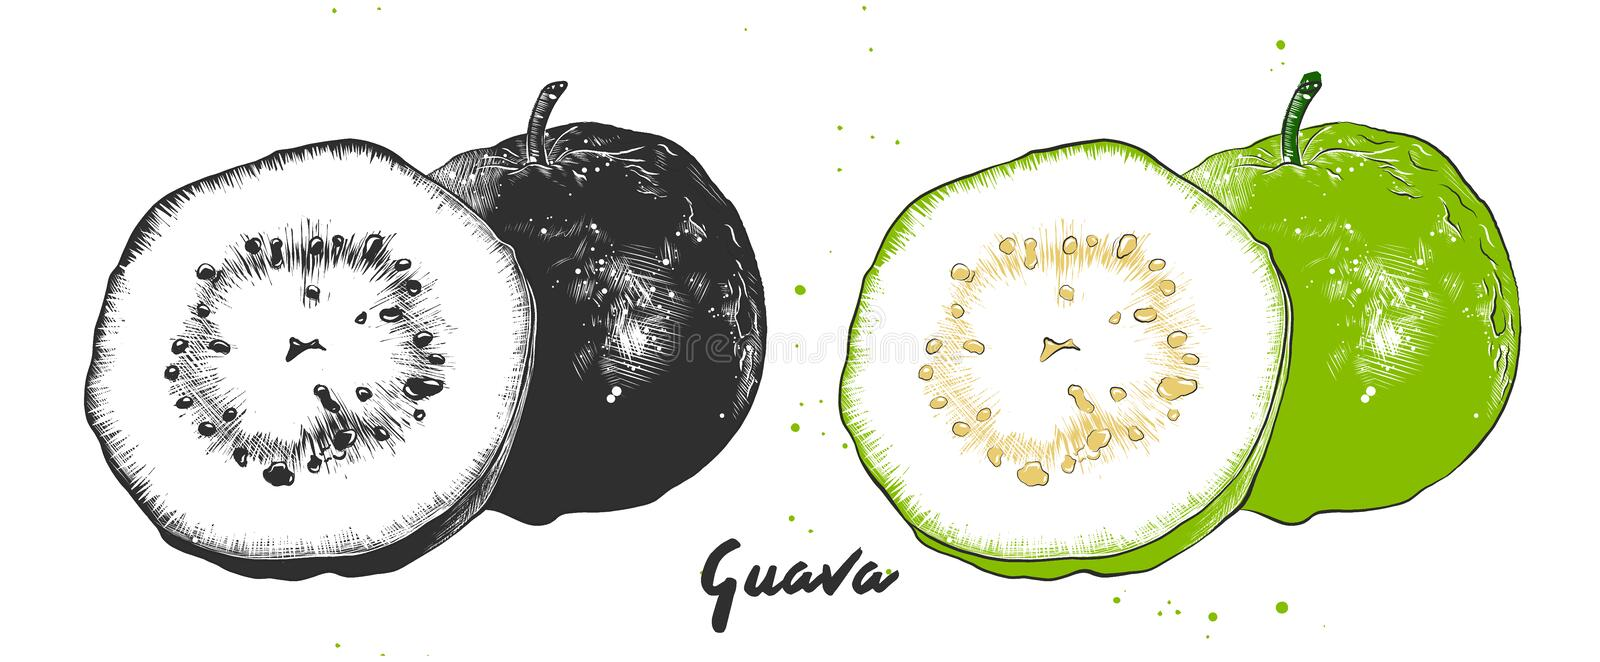 Hand drawn sketch of guava fruit in monochrome and colorful. Detailed vegetarian food drawing vector illustration